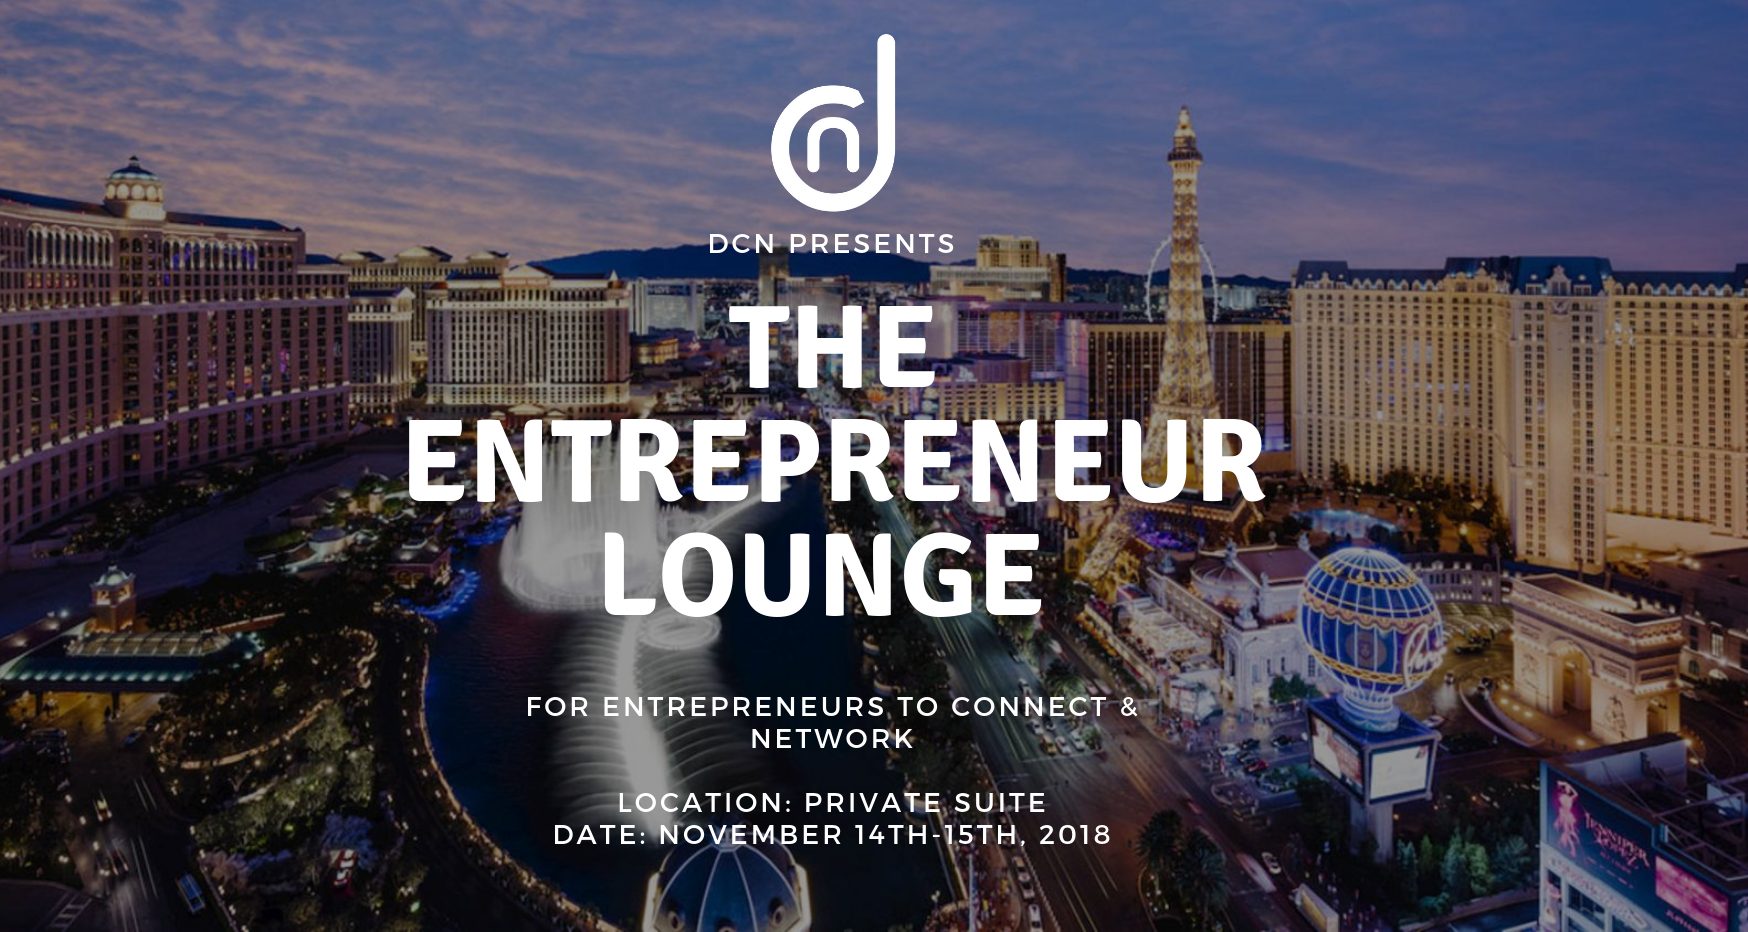 DCN presents The Entrepreneur Lounge in Las Vegas